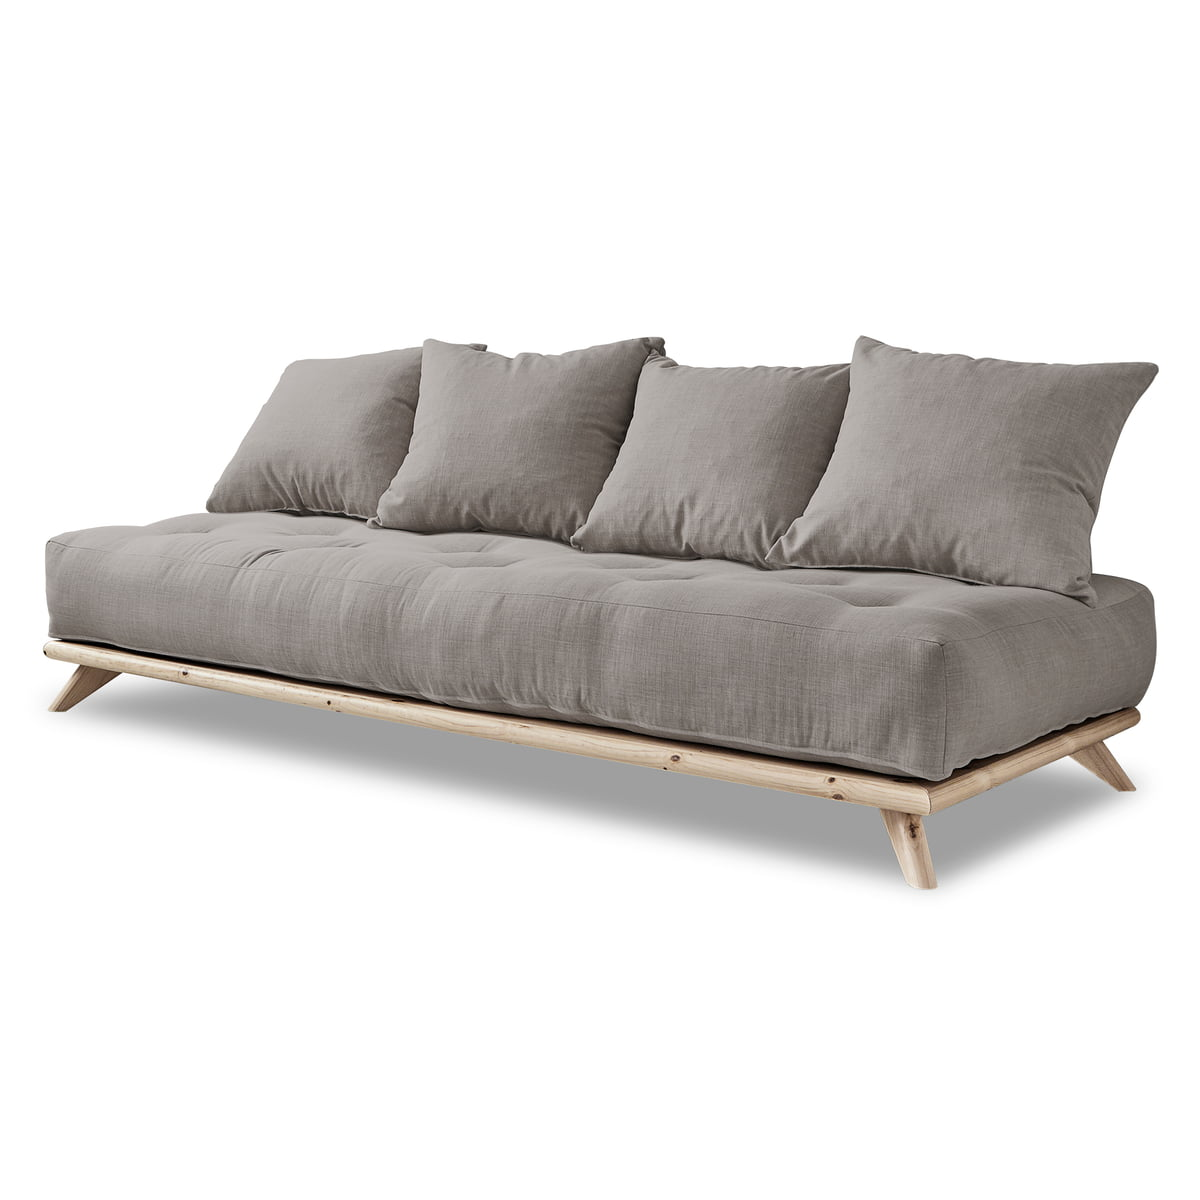 Matratzen sofa  Senza by Karup | Connox Shop